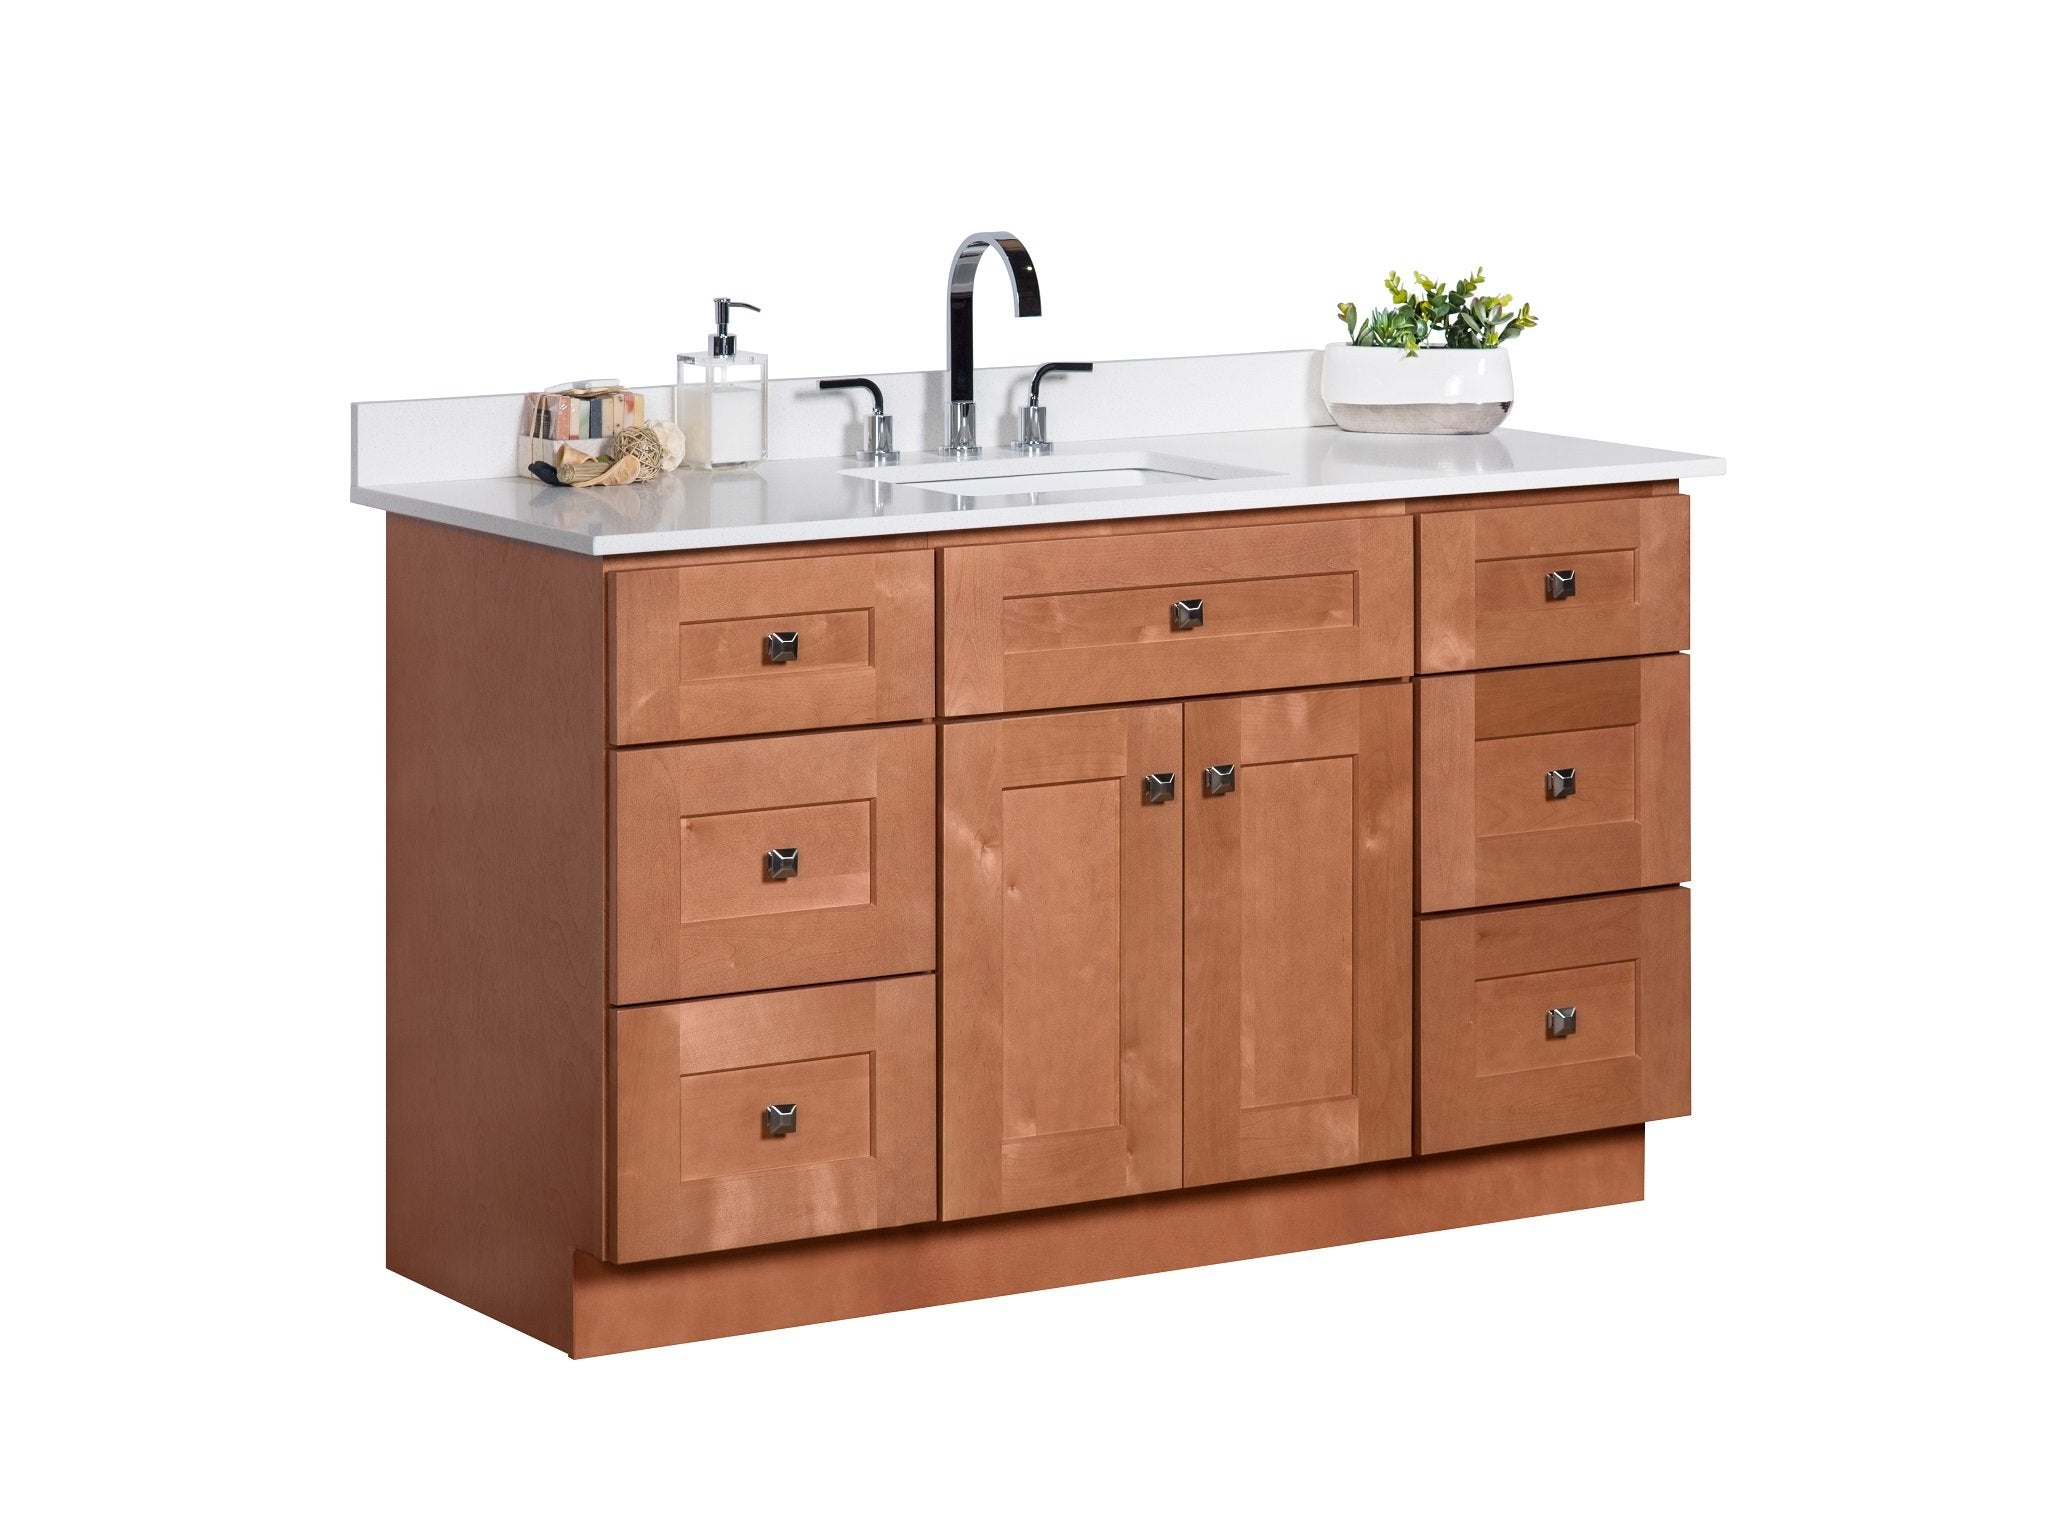 54 single sink maple wood bathroom vanity in almond broadway rh broadway vanities myshopify com maple bathroom vanities unfinished maple bathroom vanity